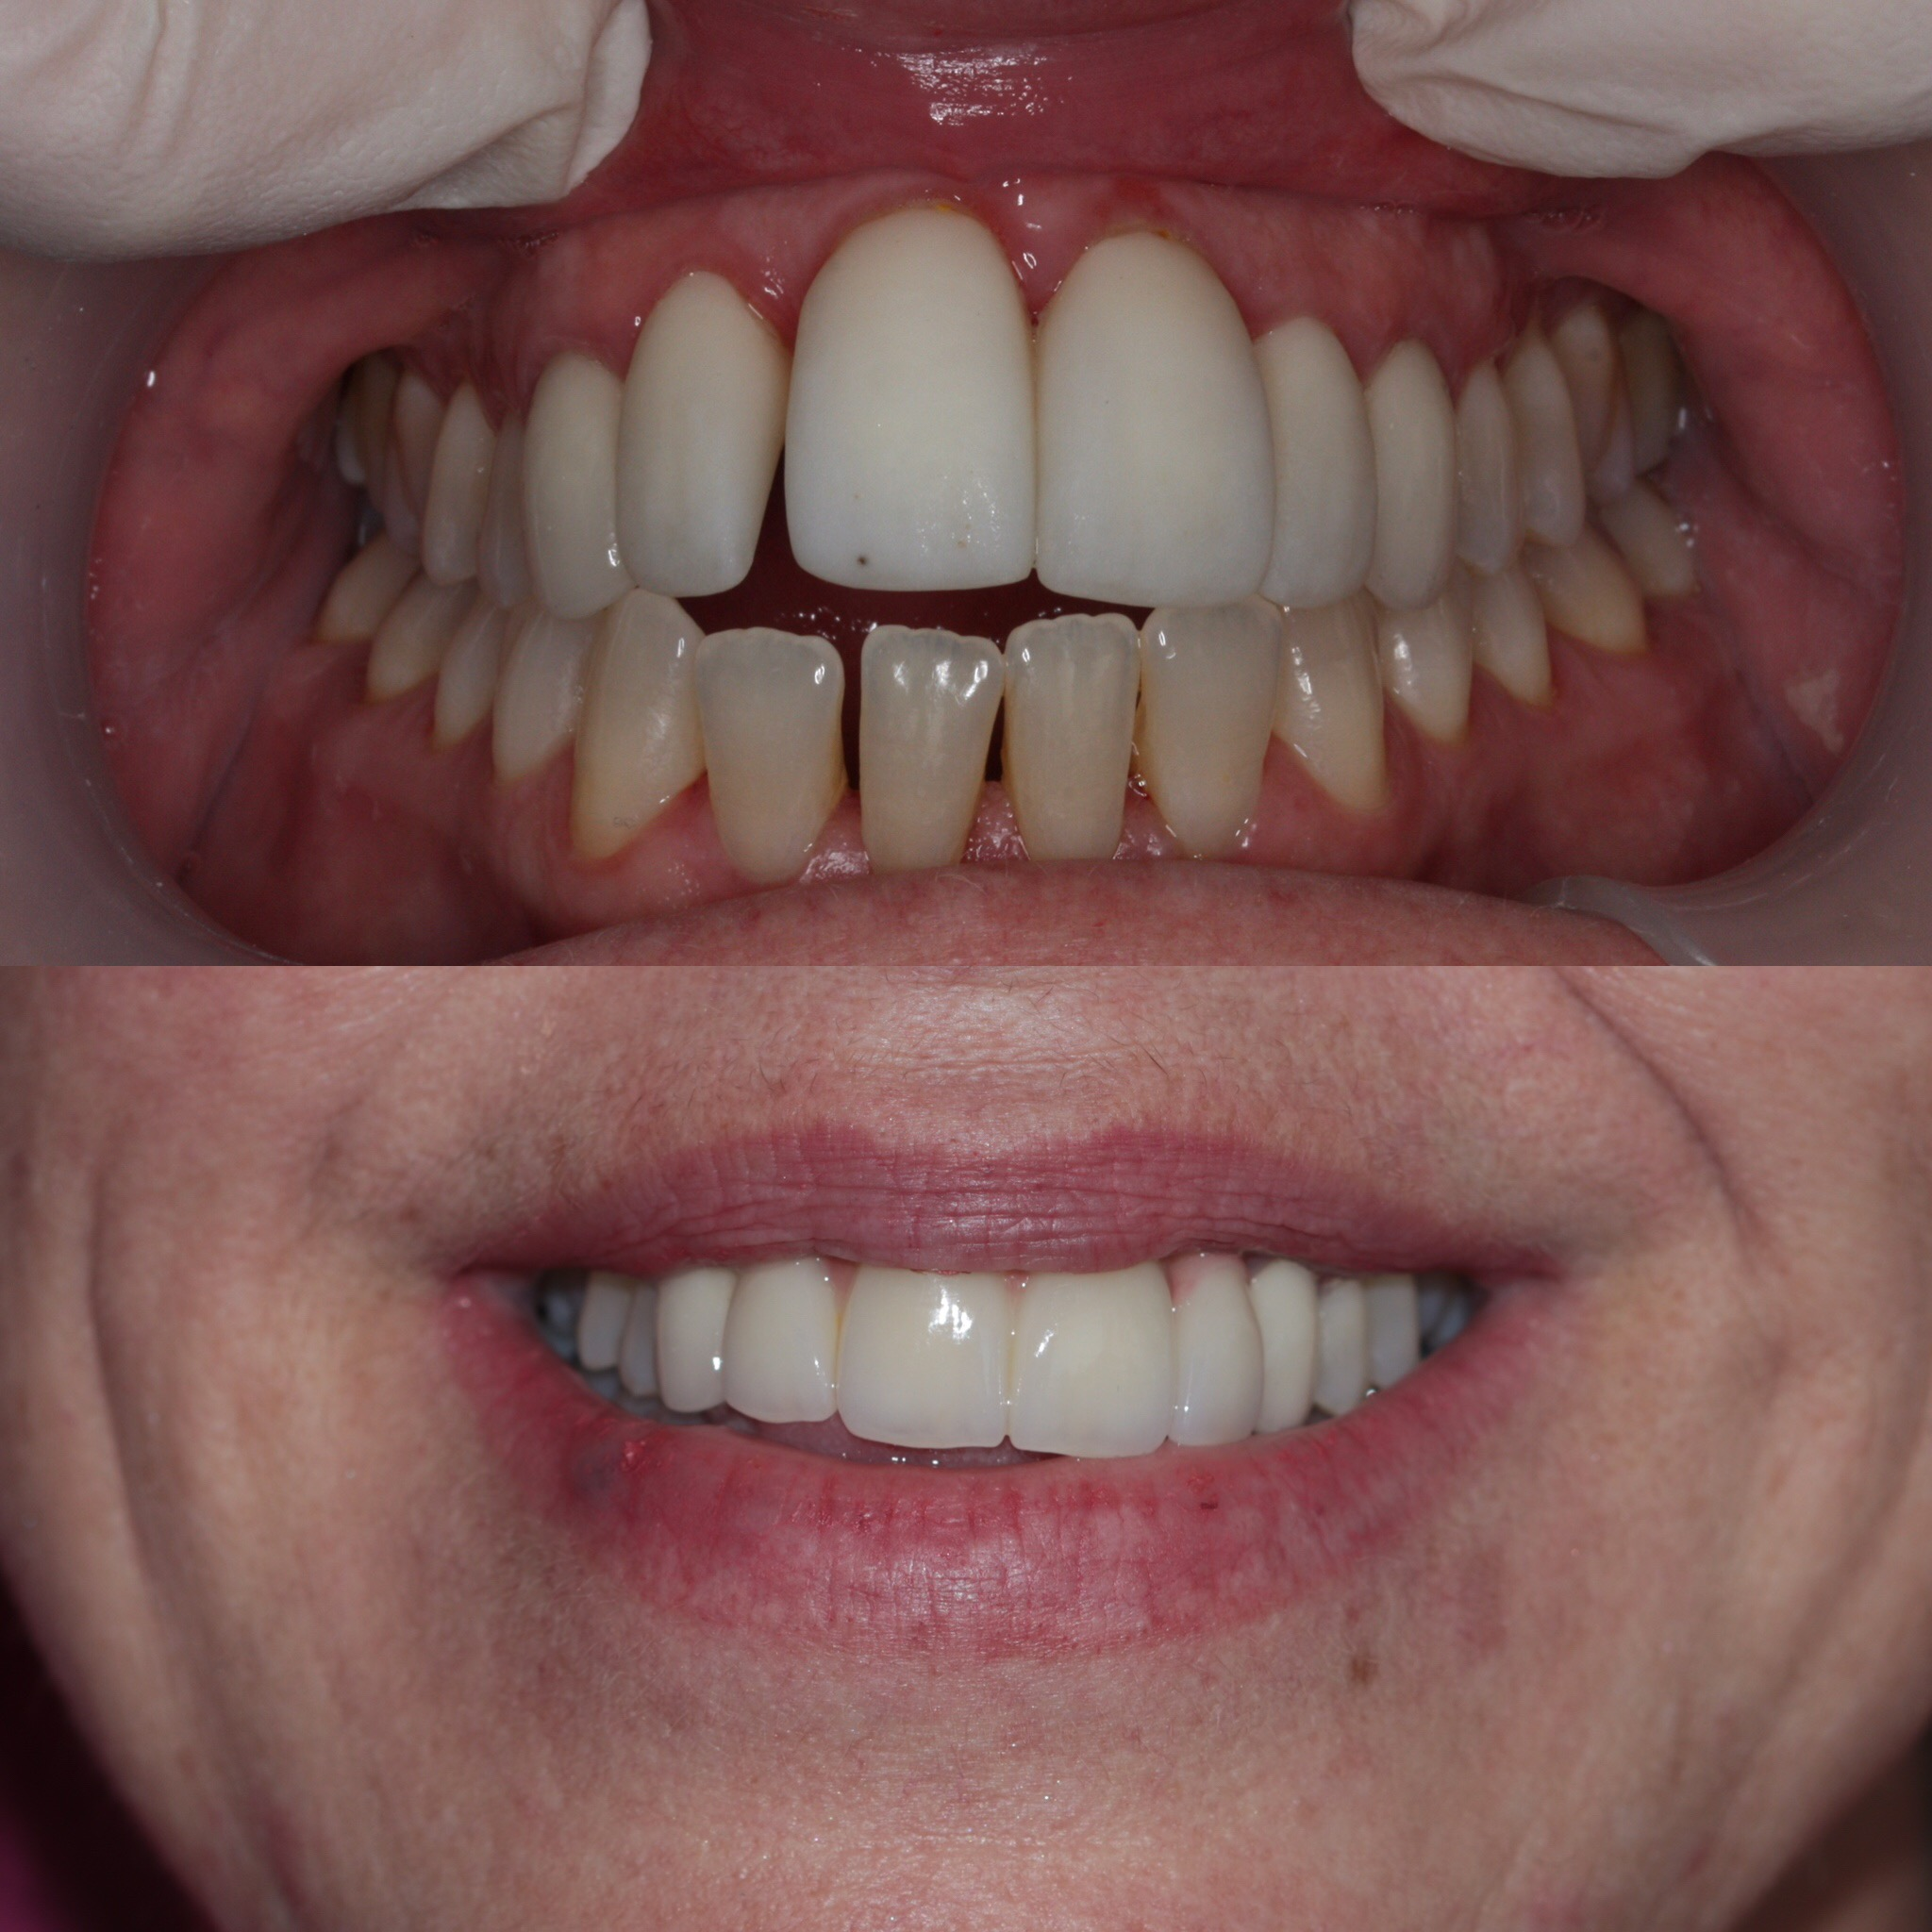 A new smile for this wonderful woman with 4 porcelain crowns